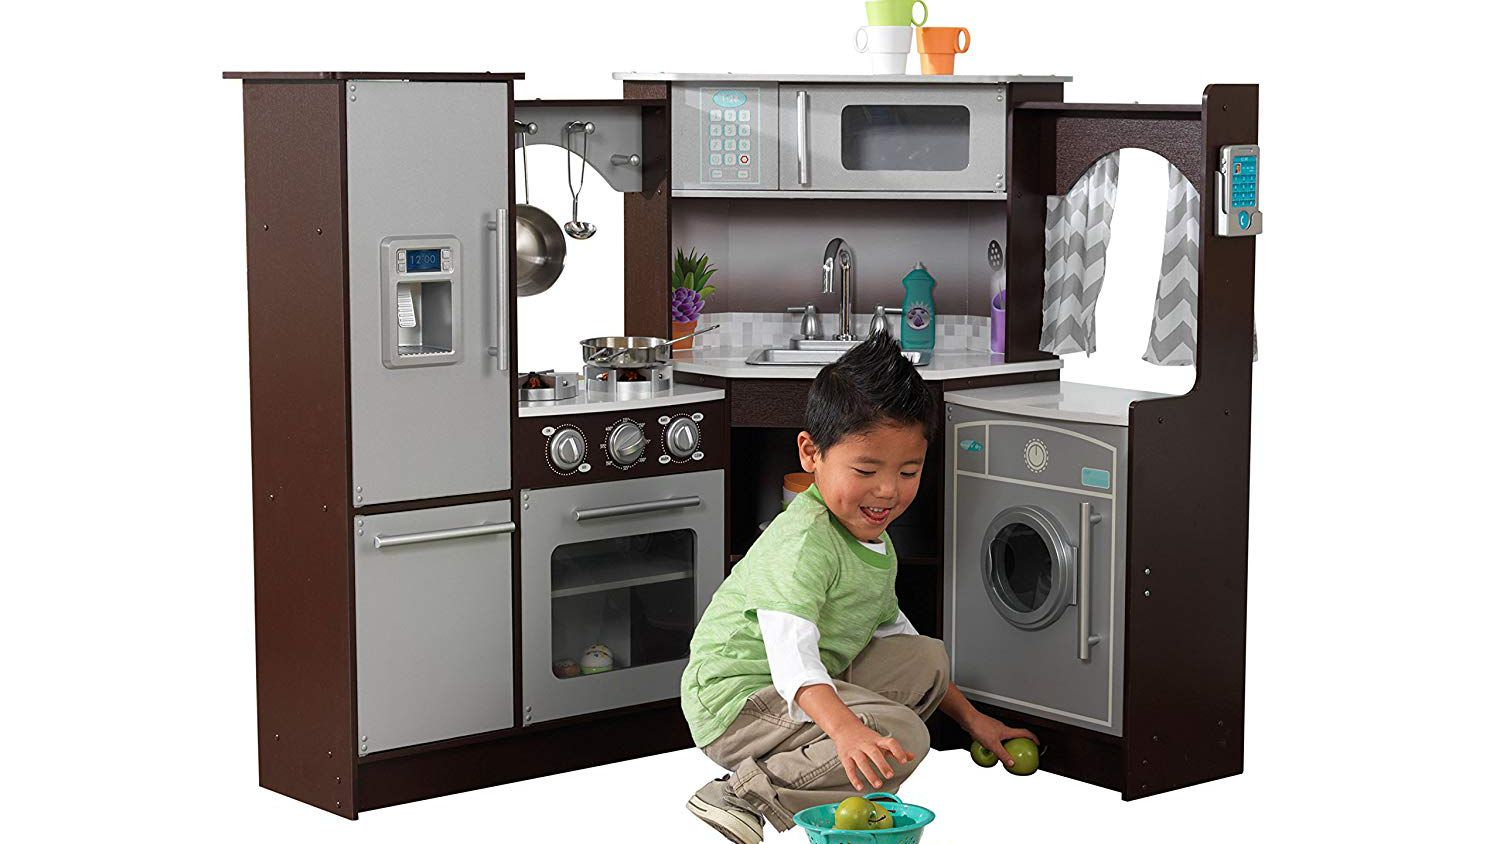 MY Kitchen Play Set Microwave Battery Operated Includes 11 Doll